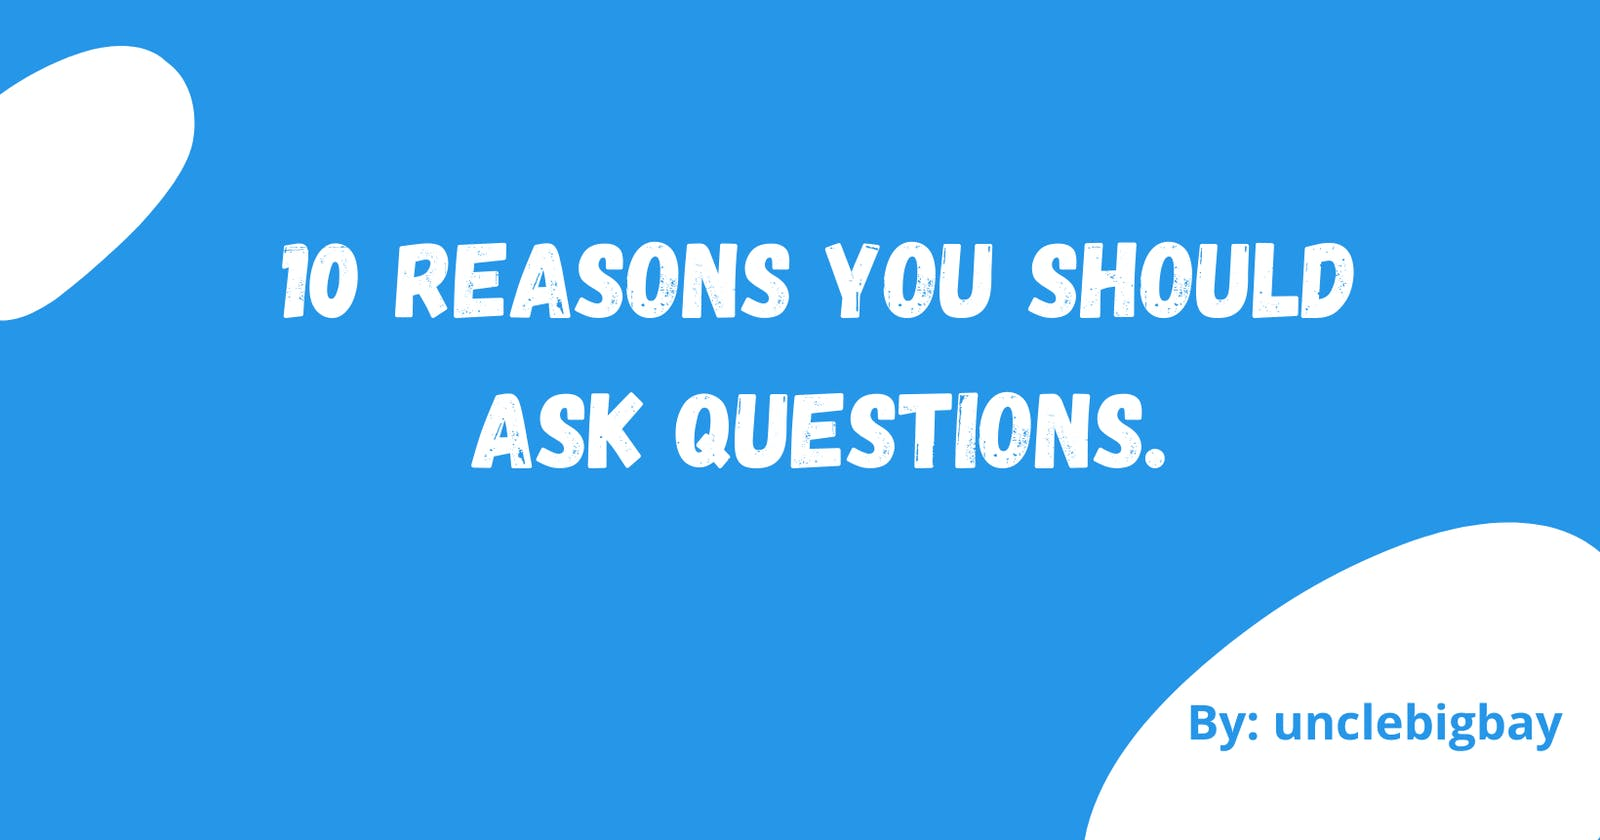 10 Reasons you should ask questions.